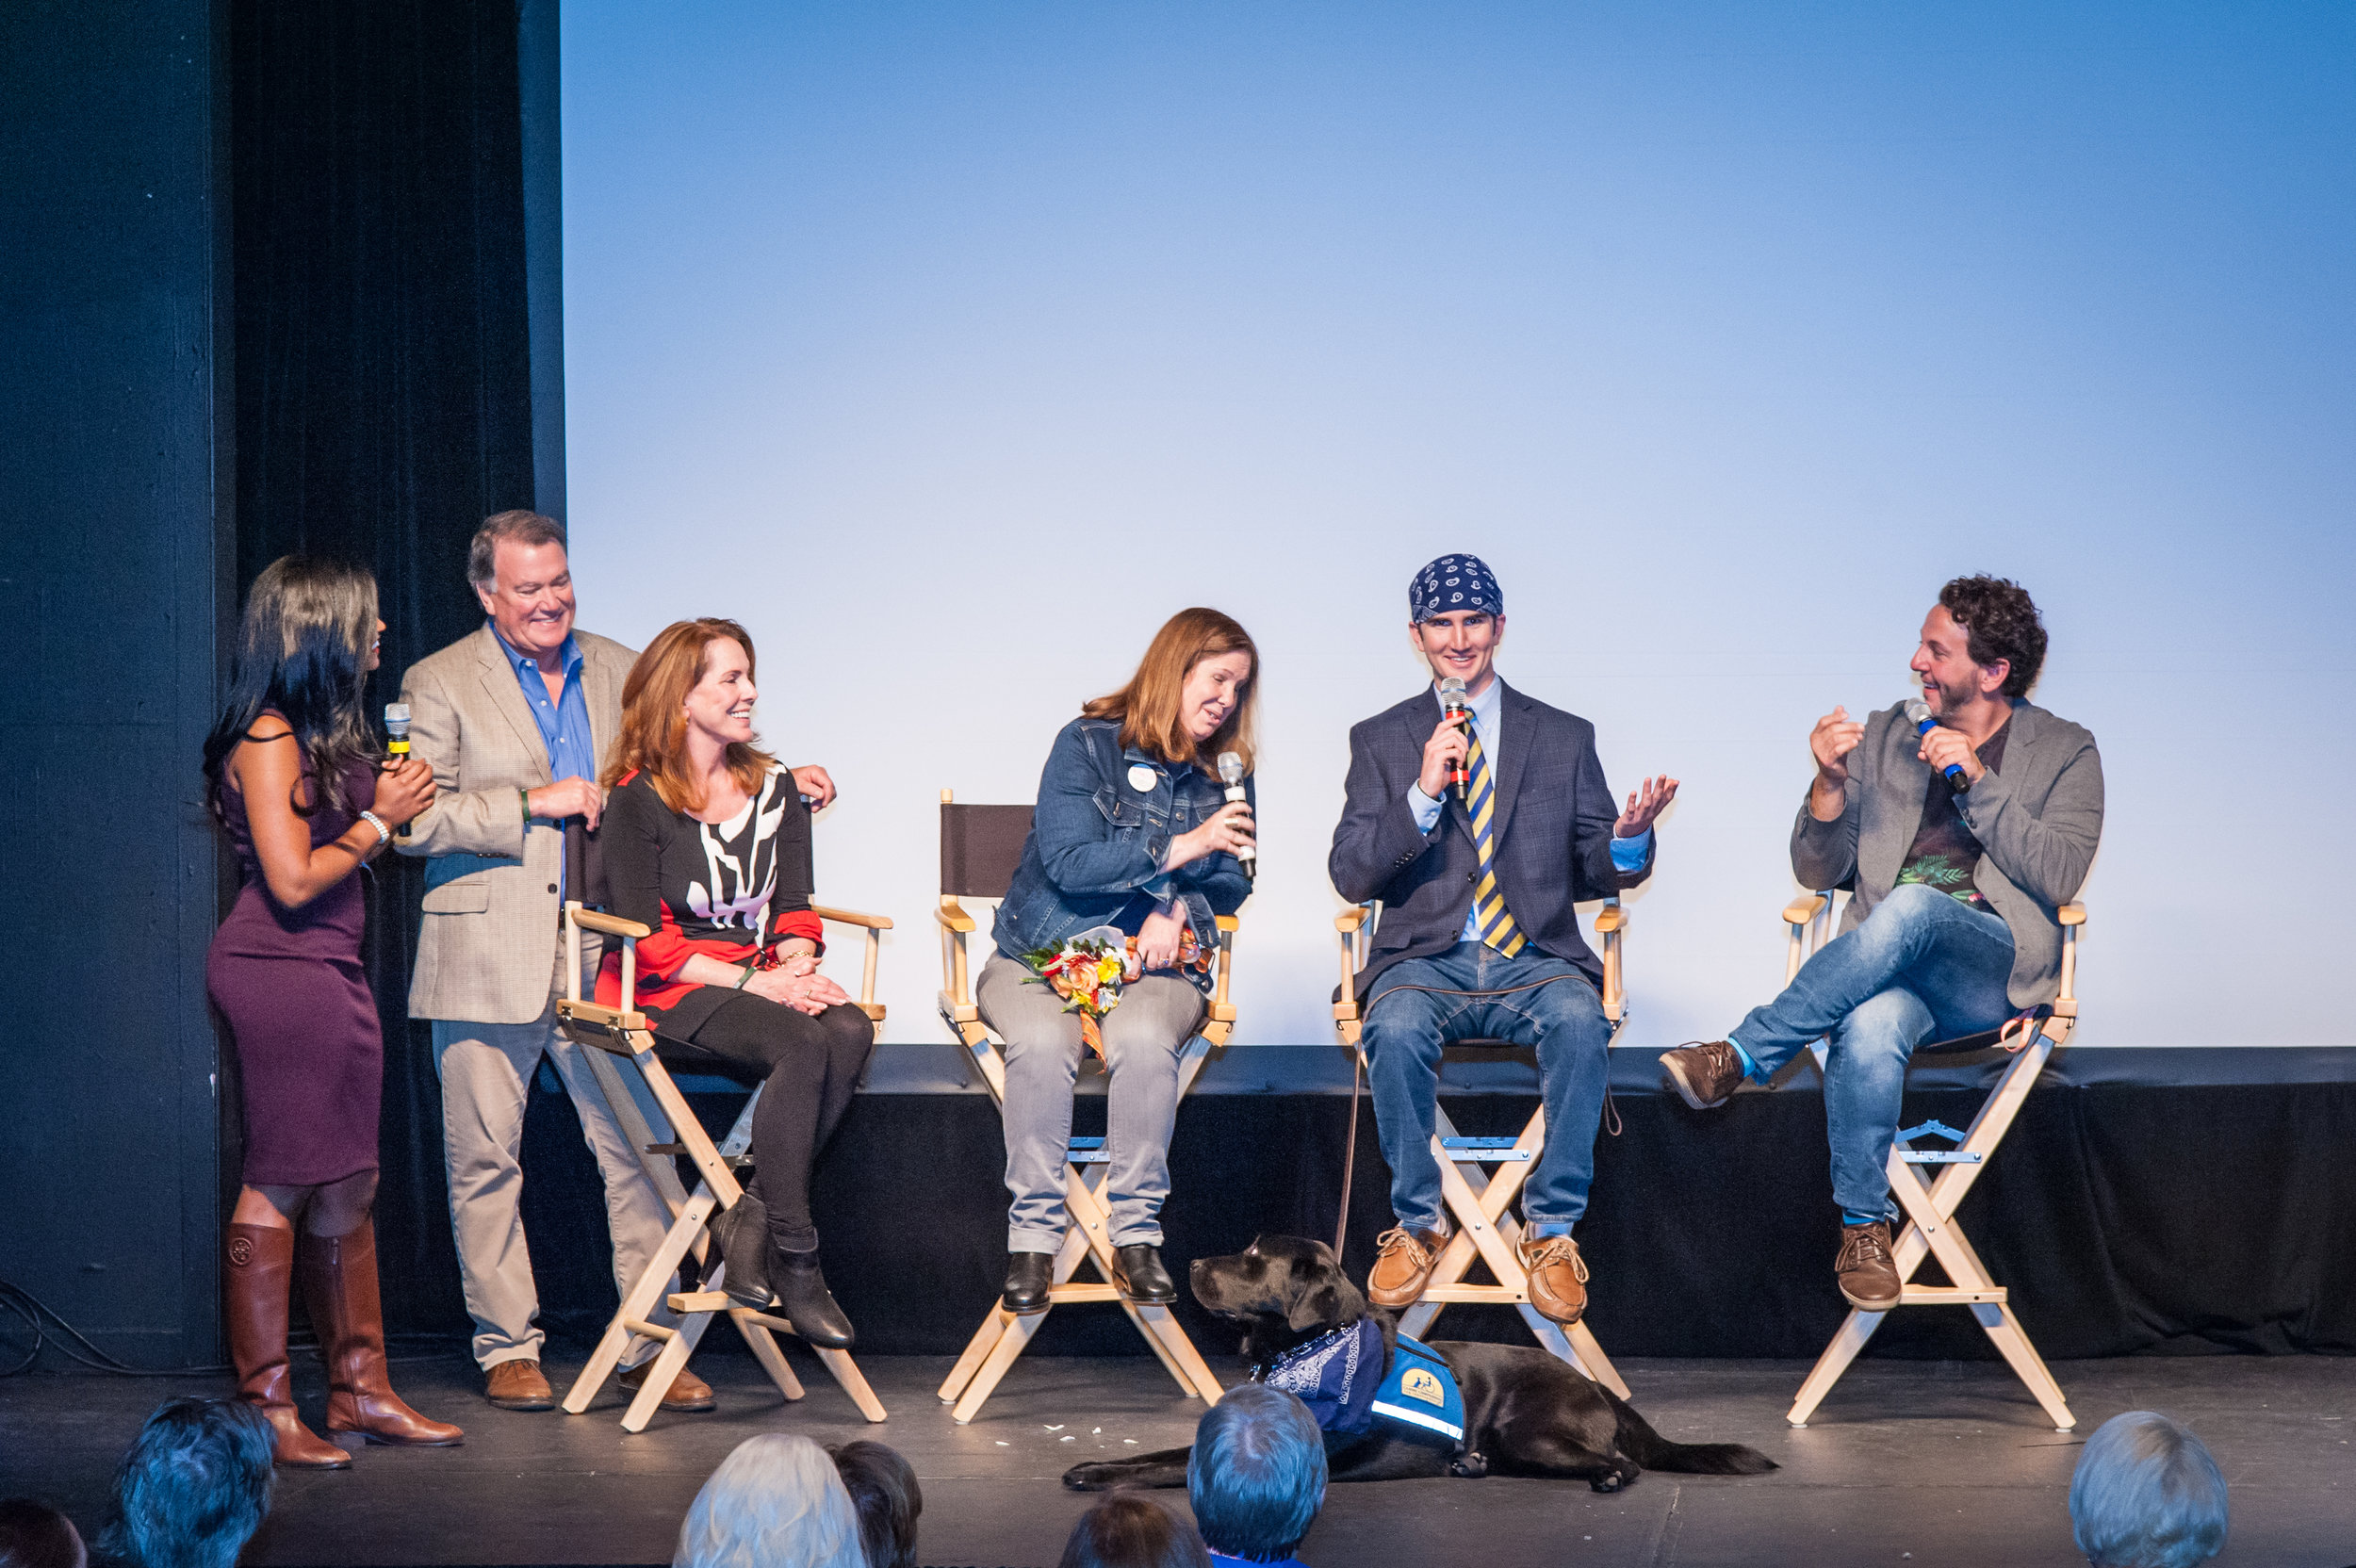 Q & A followed the screening with Forrest Allen, Tom Sweitzer, Director Susan Koch and Forrest's parents Rae Stone and Kent Allen.  And of course, Tolliver!